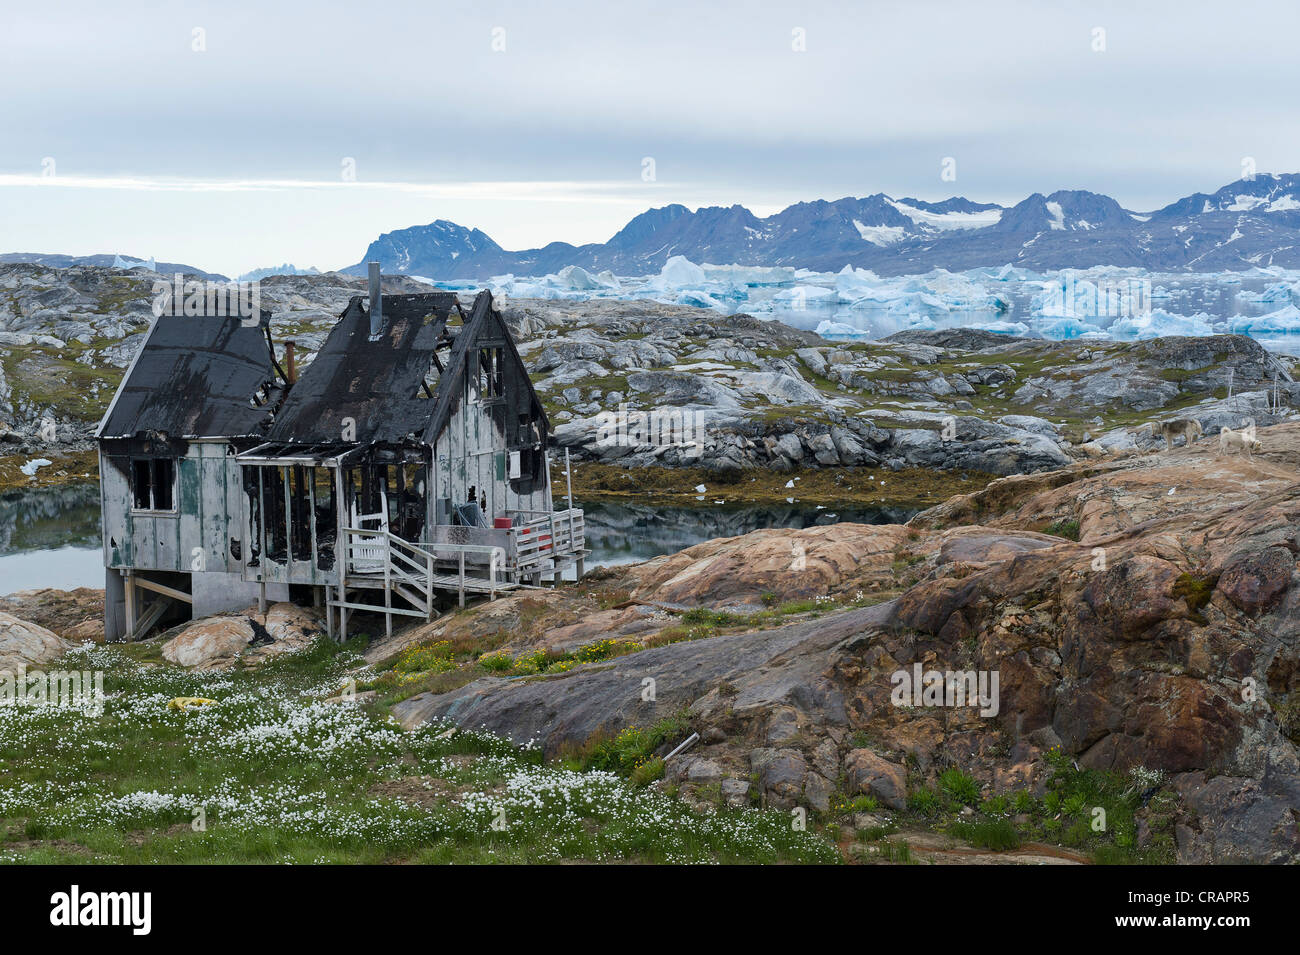 Burned house, Inuit settlement of Tiniteqilaaq, Sermilik Fjord, East Greenland, Greenland - Stock Image